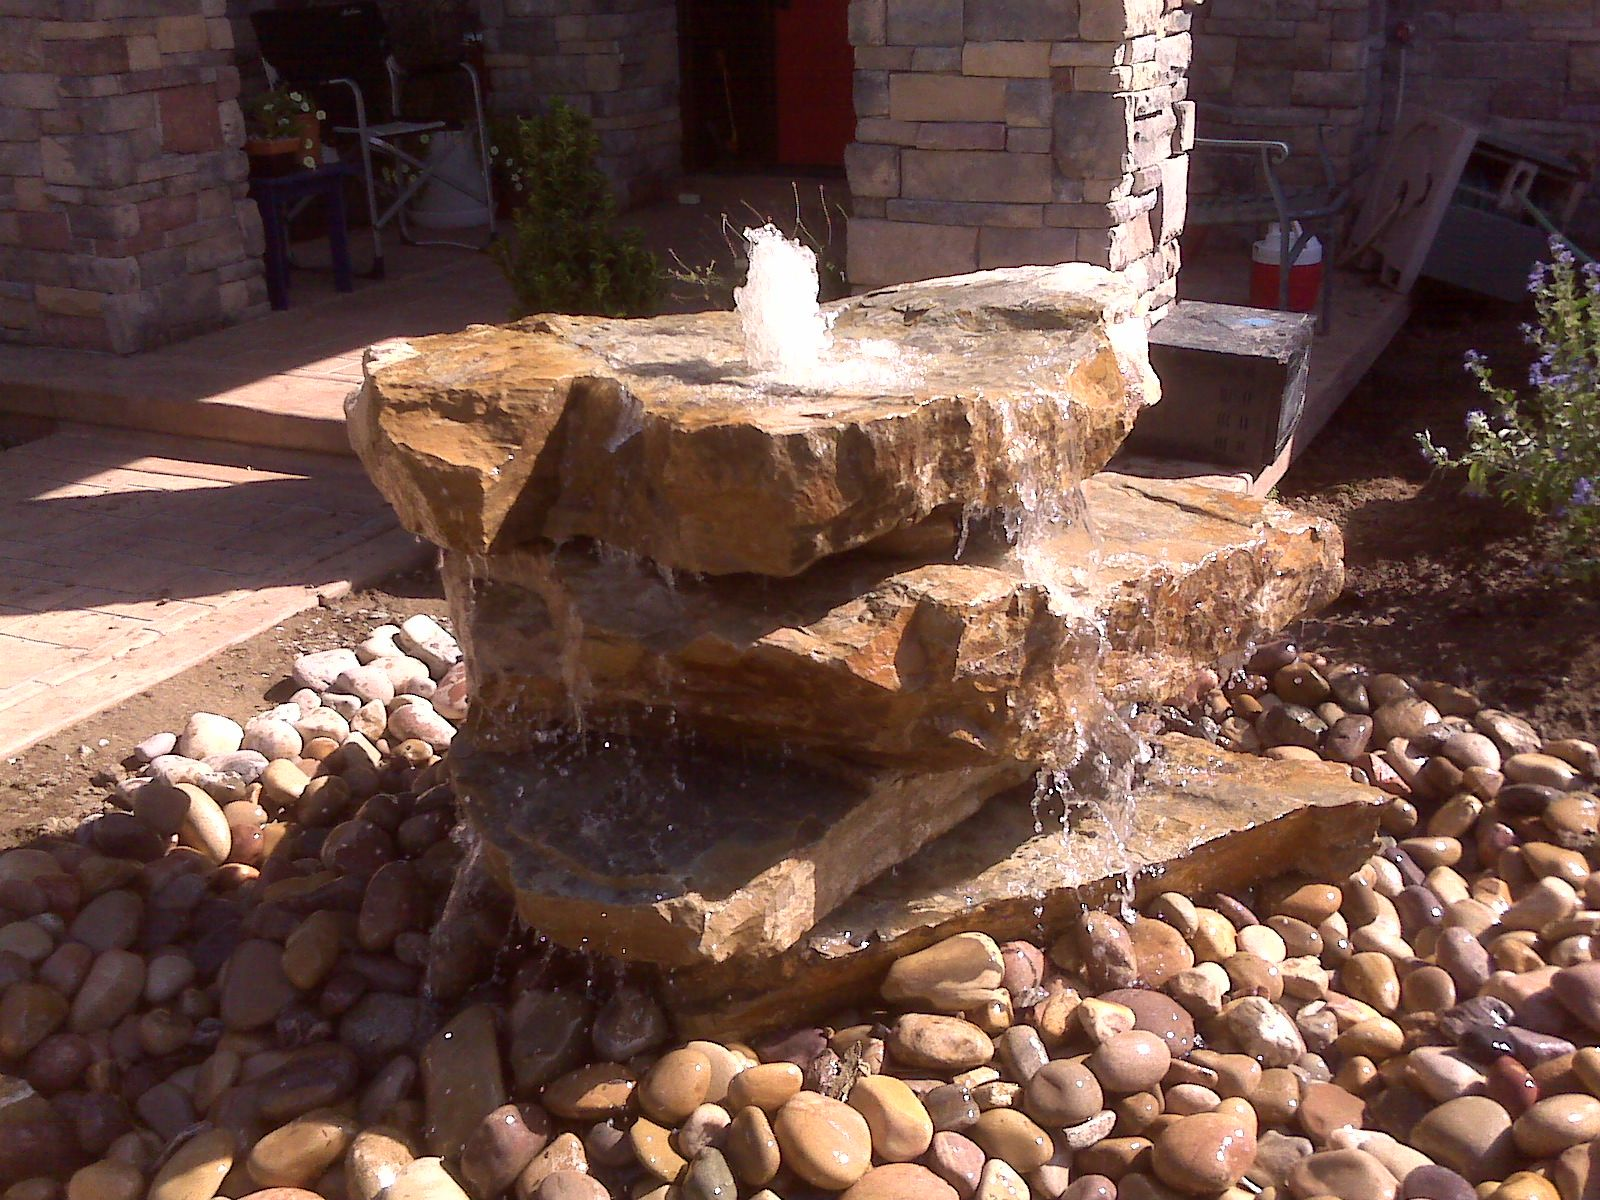 Utah Landscapers, Landscaping, Relandscaping And Adding Waterfeatures,  Water Fountains With The Rocks Drilled, Streams, Disappering Ponds, Fire  Pit Natural ...